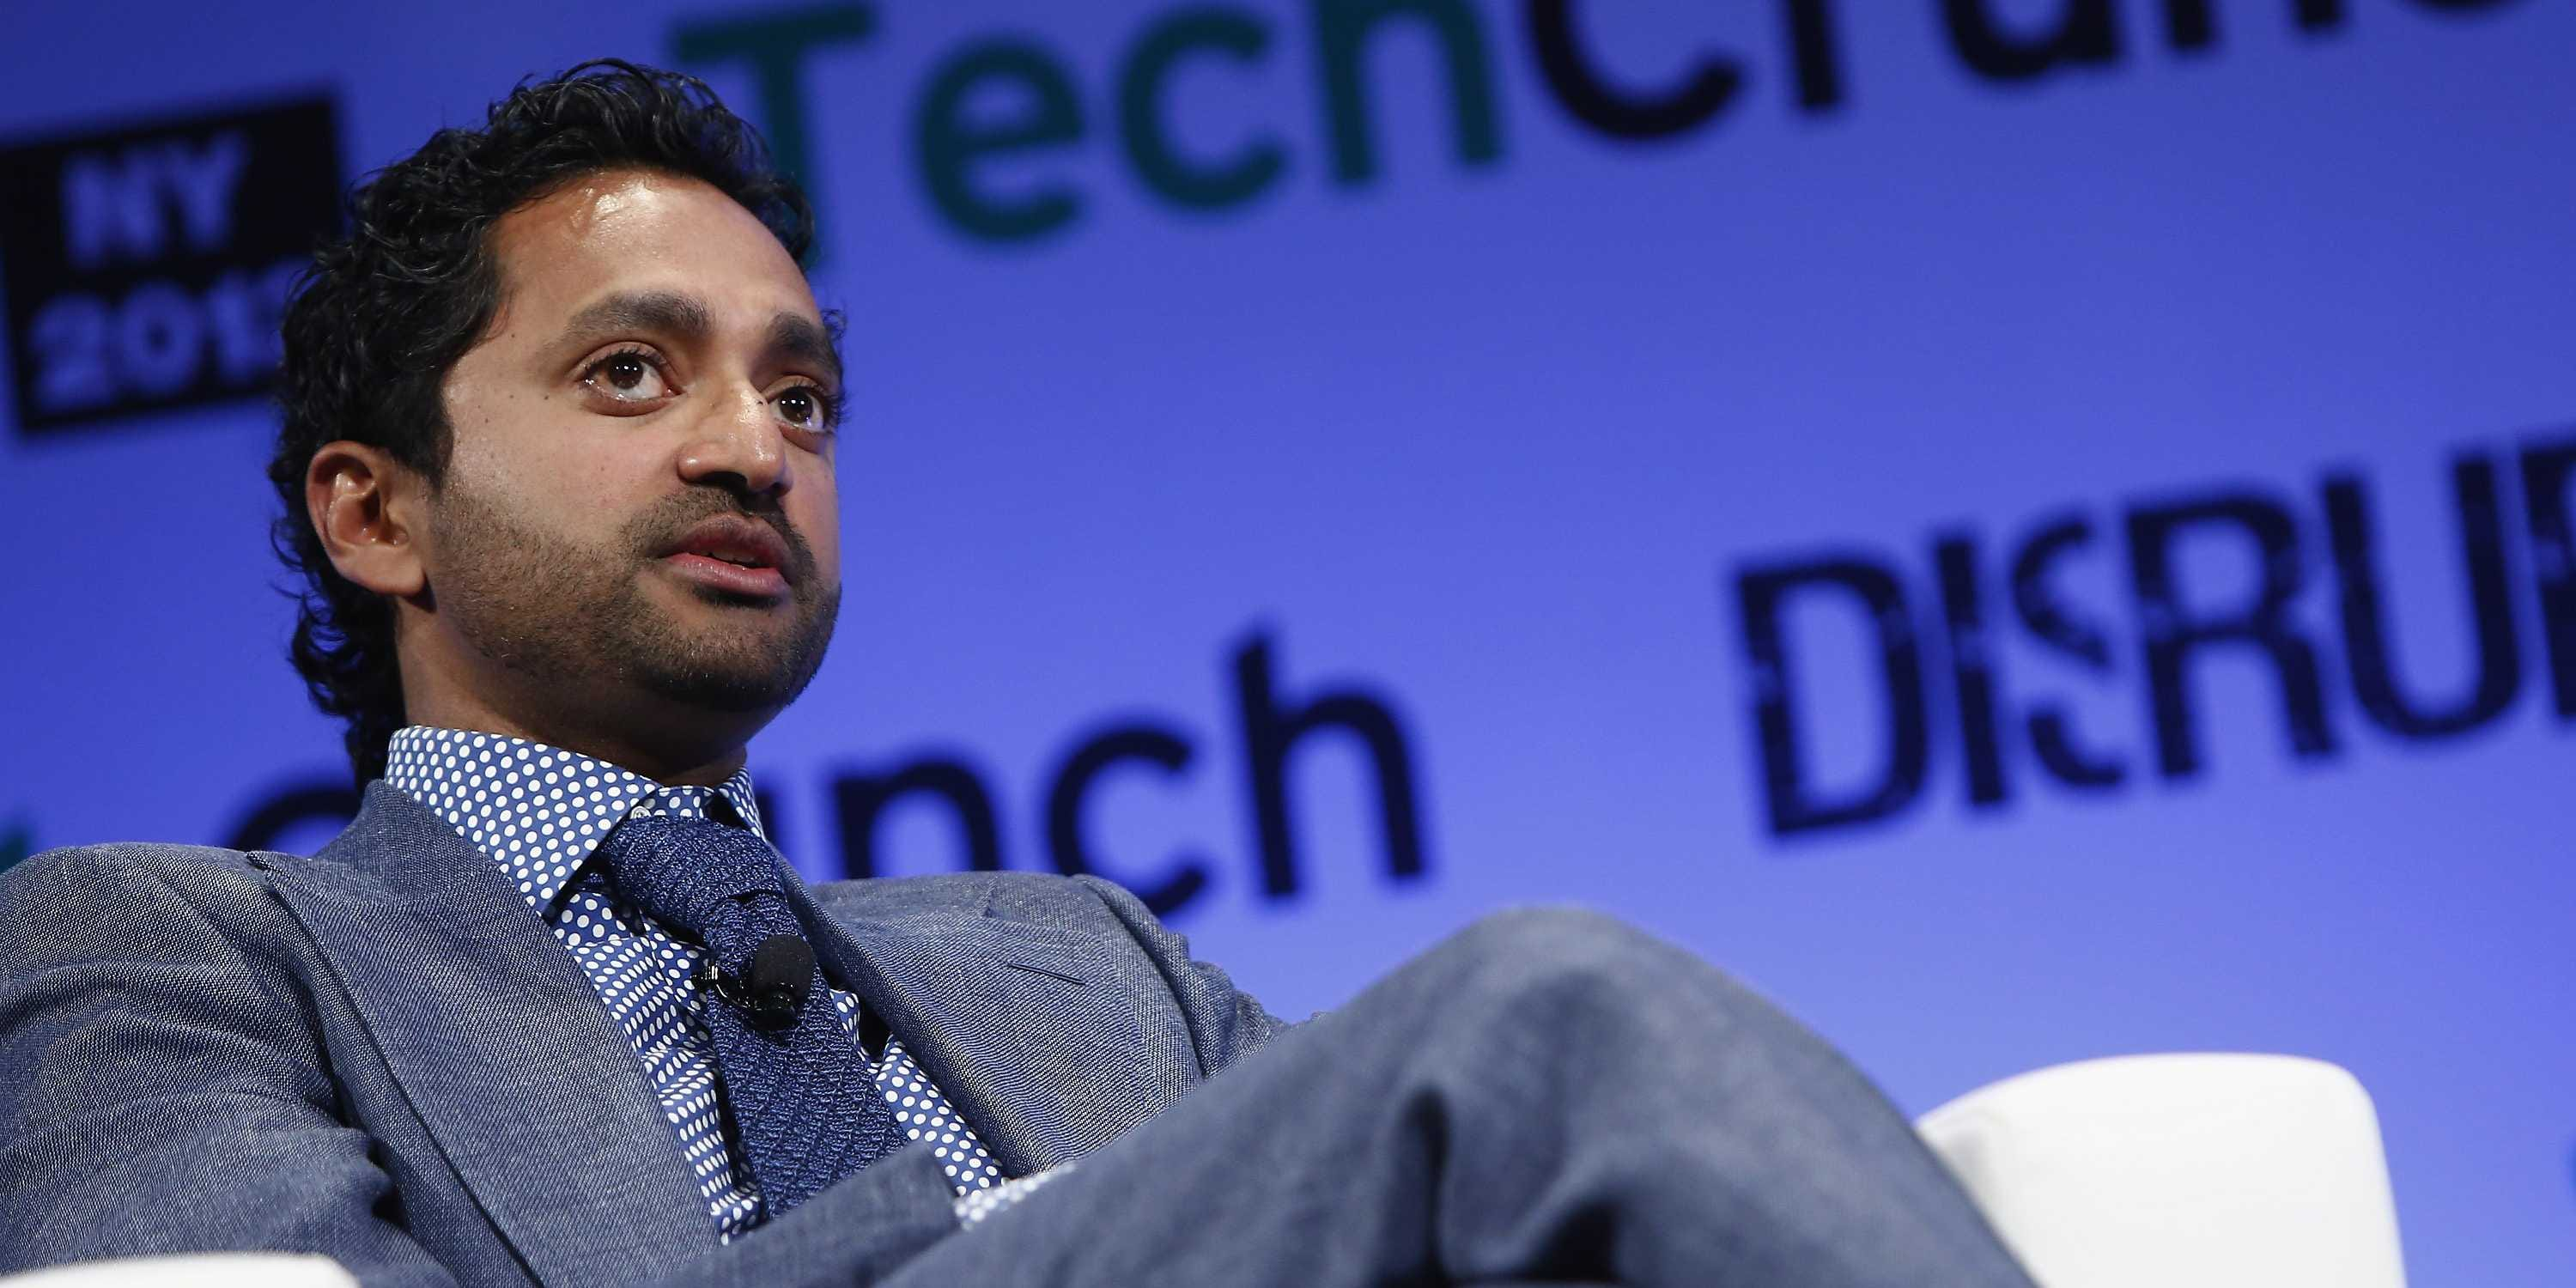 Access here alternative investment news about Billionaire Investor Chamath Palihapitiya Reportedly Plans To Raise $500M With 4th Spac As Blank-check Spree Continues | Markets Insider